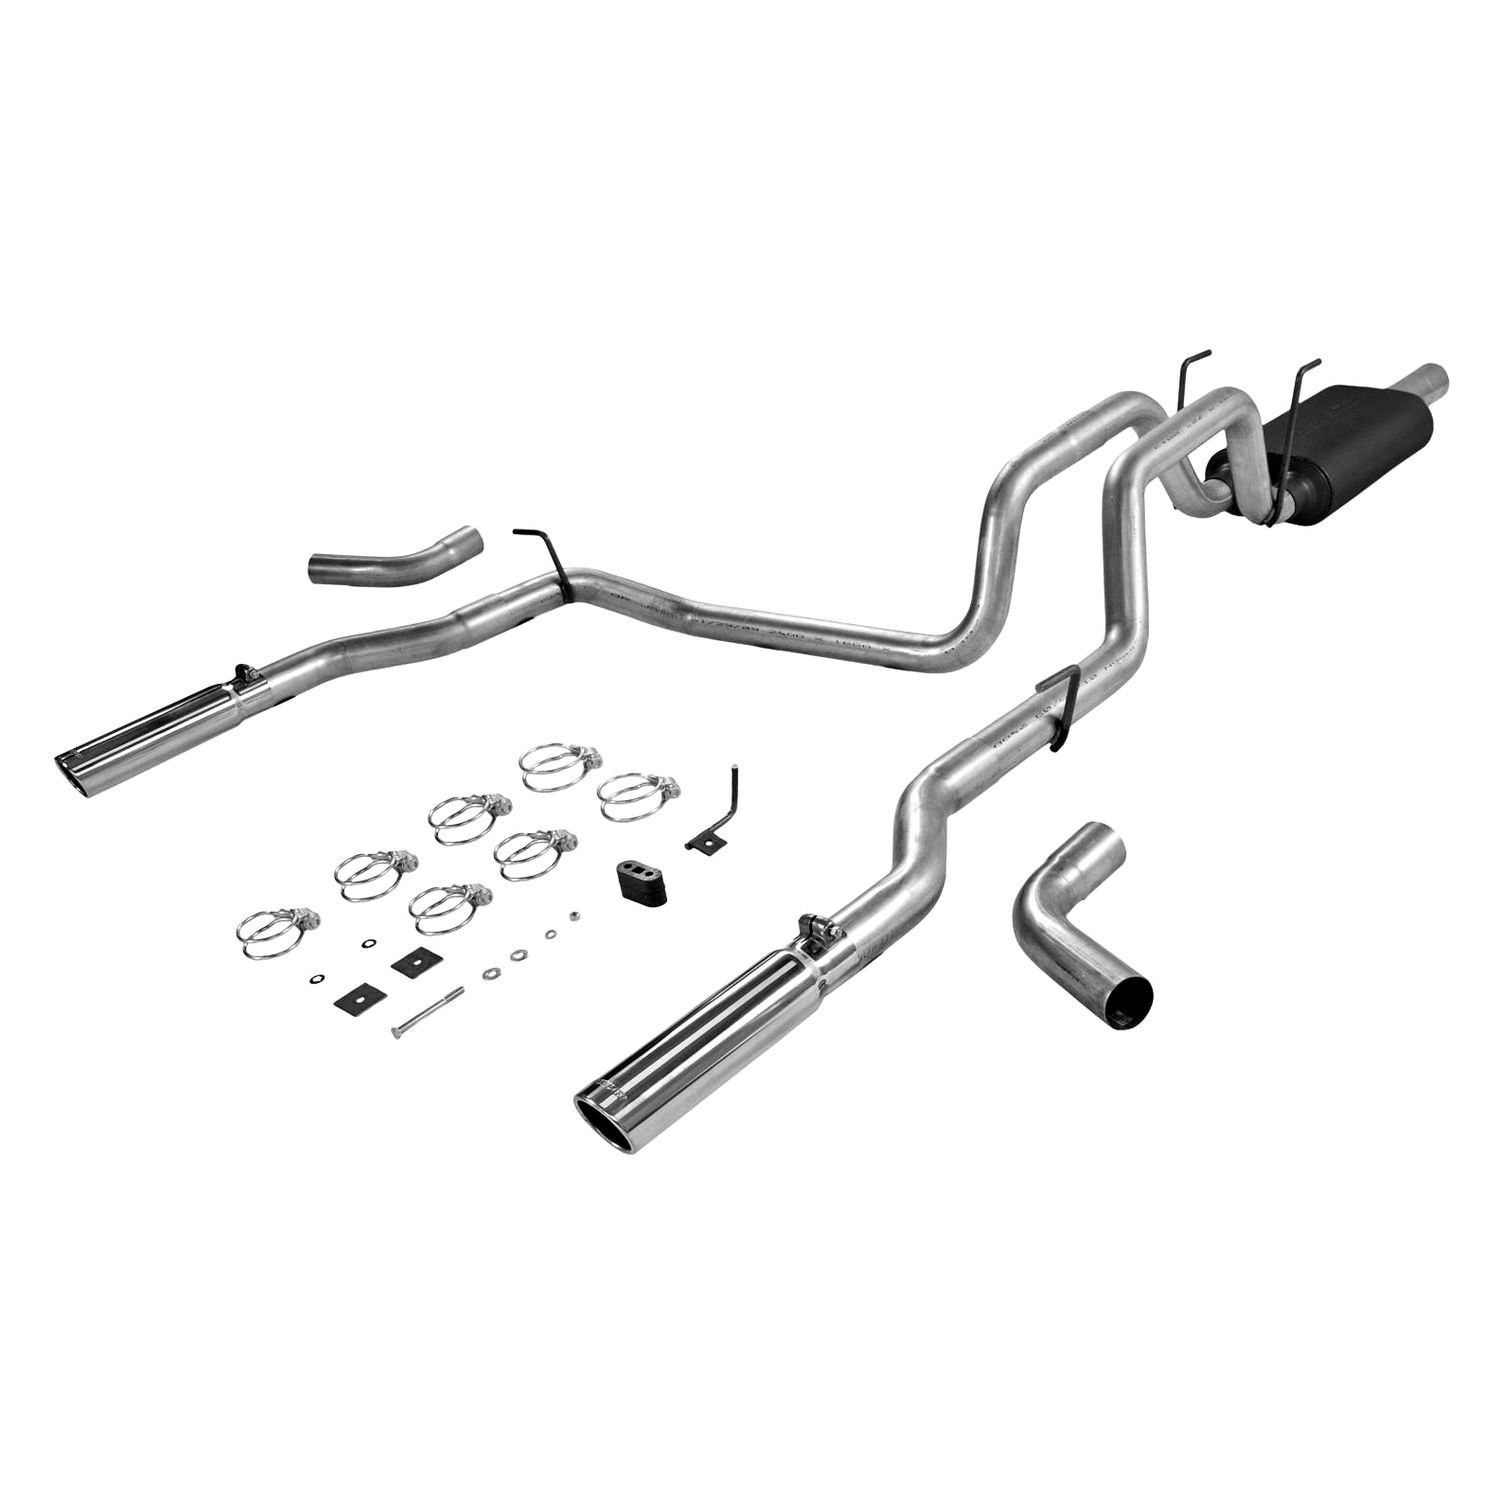 For Dodge Ram 06 08 Exhaust System American Thunder